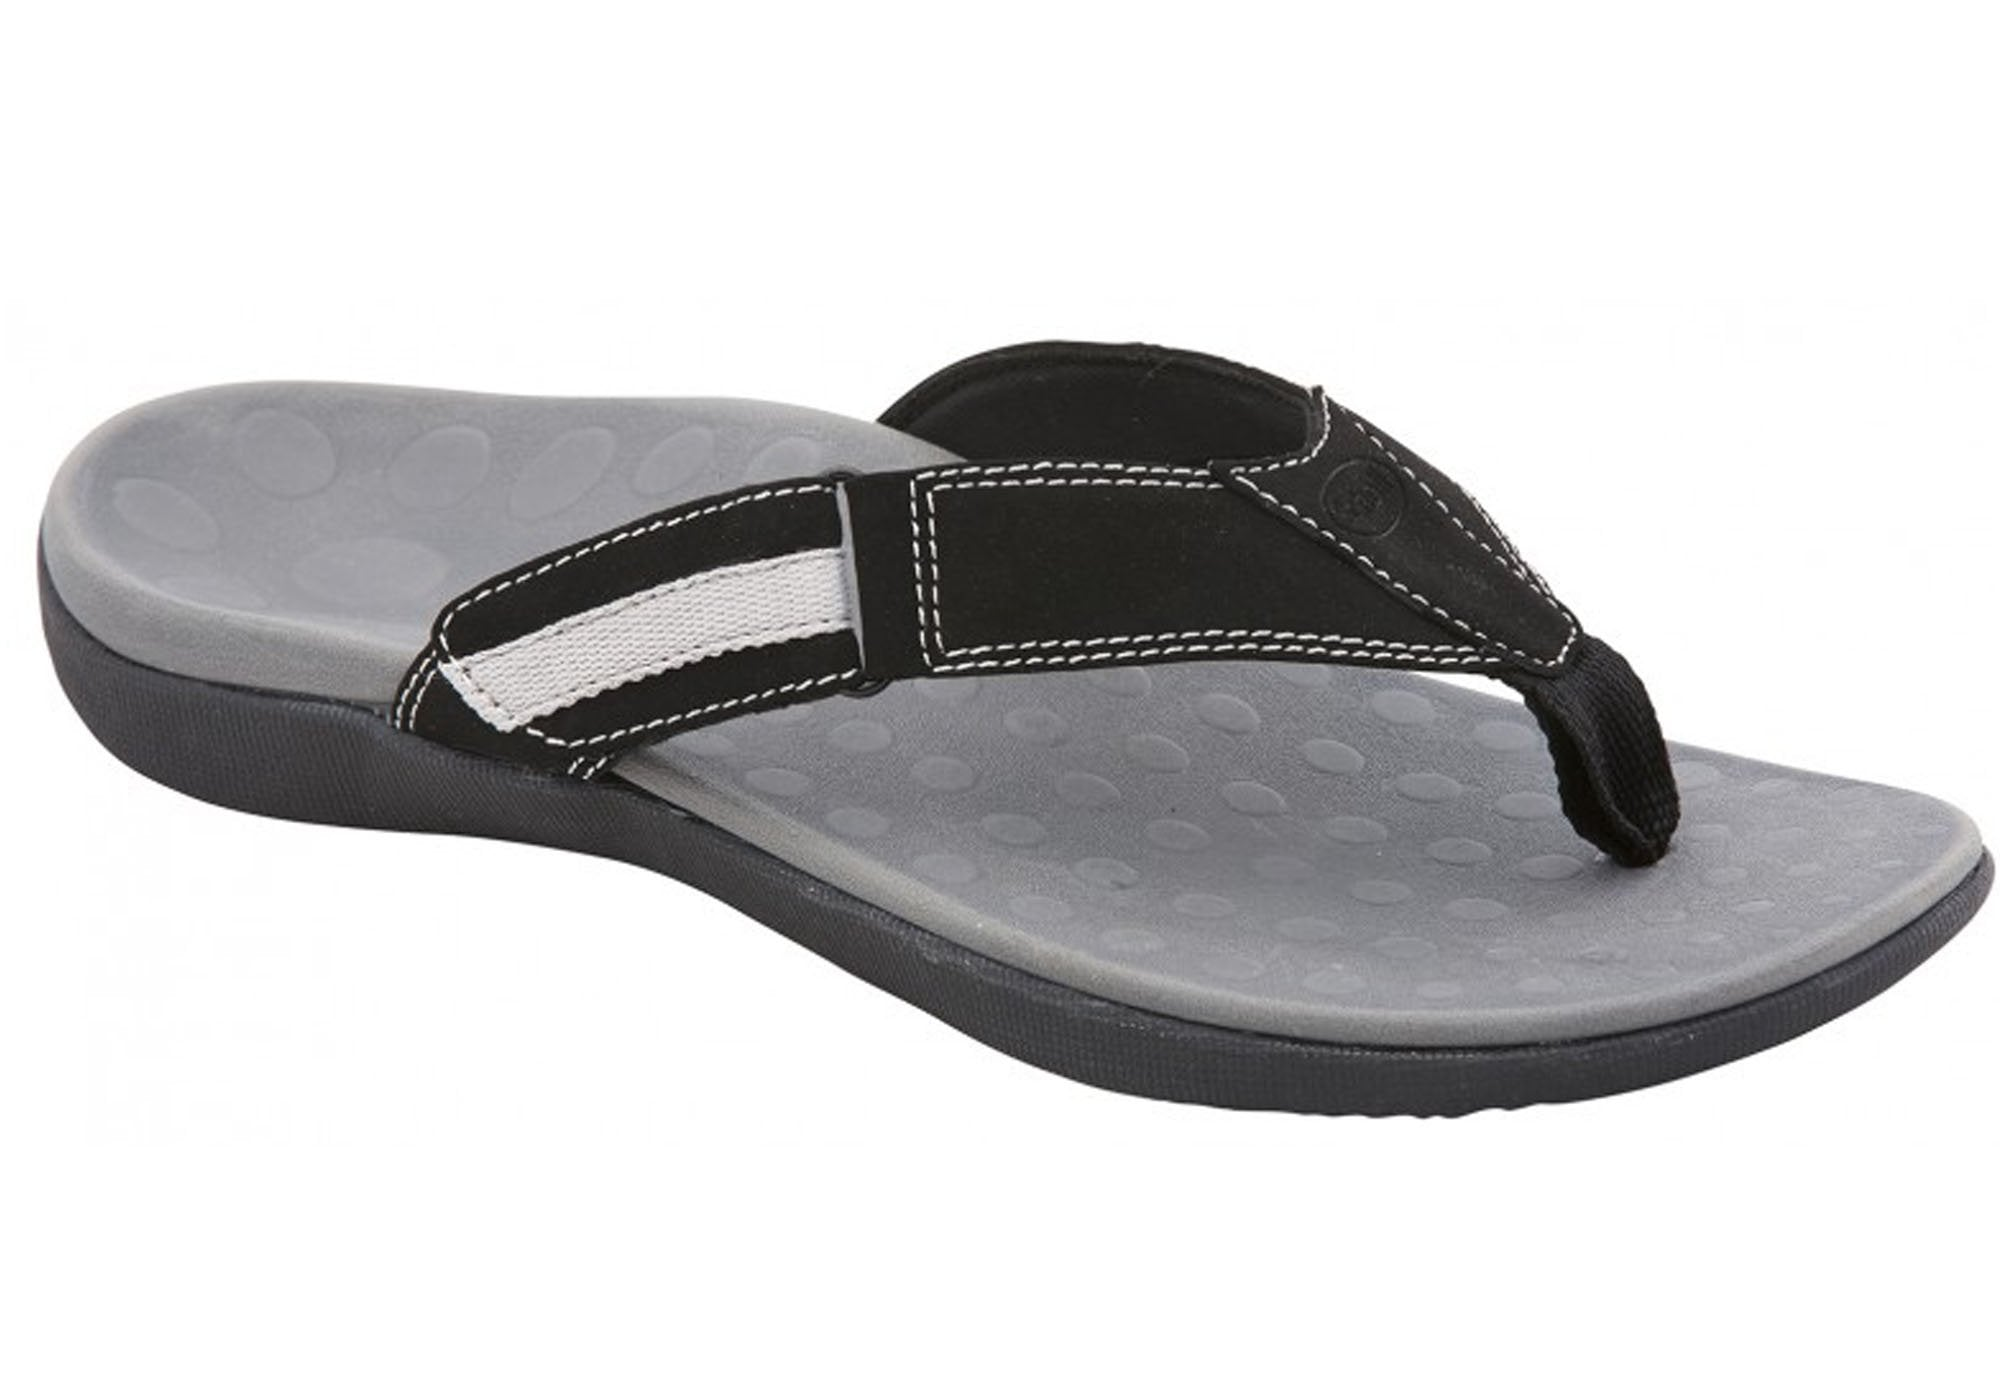 916928775cb Scholl Orthaheel Ryder II Mens Comfort Orthotic Thongs With Support